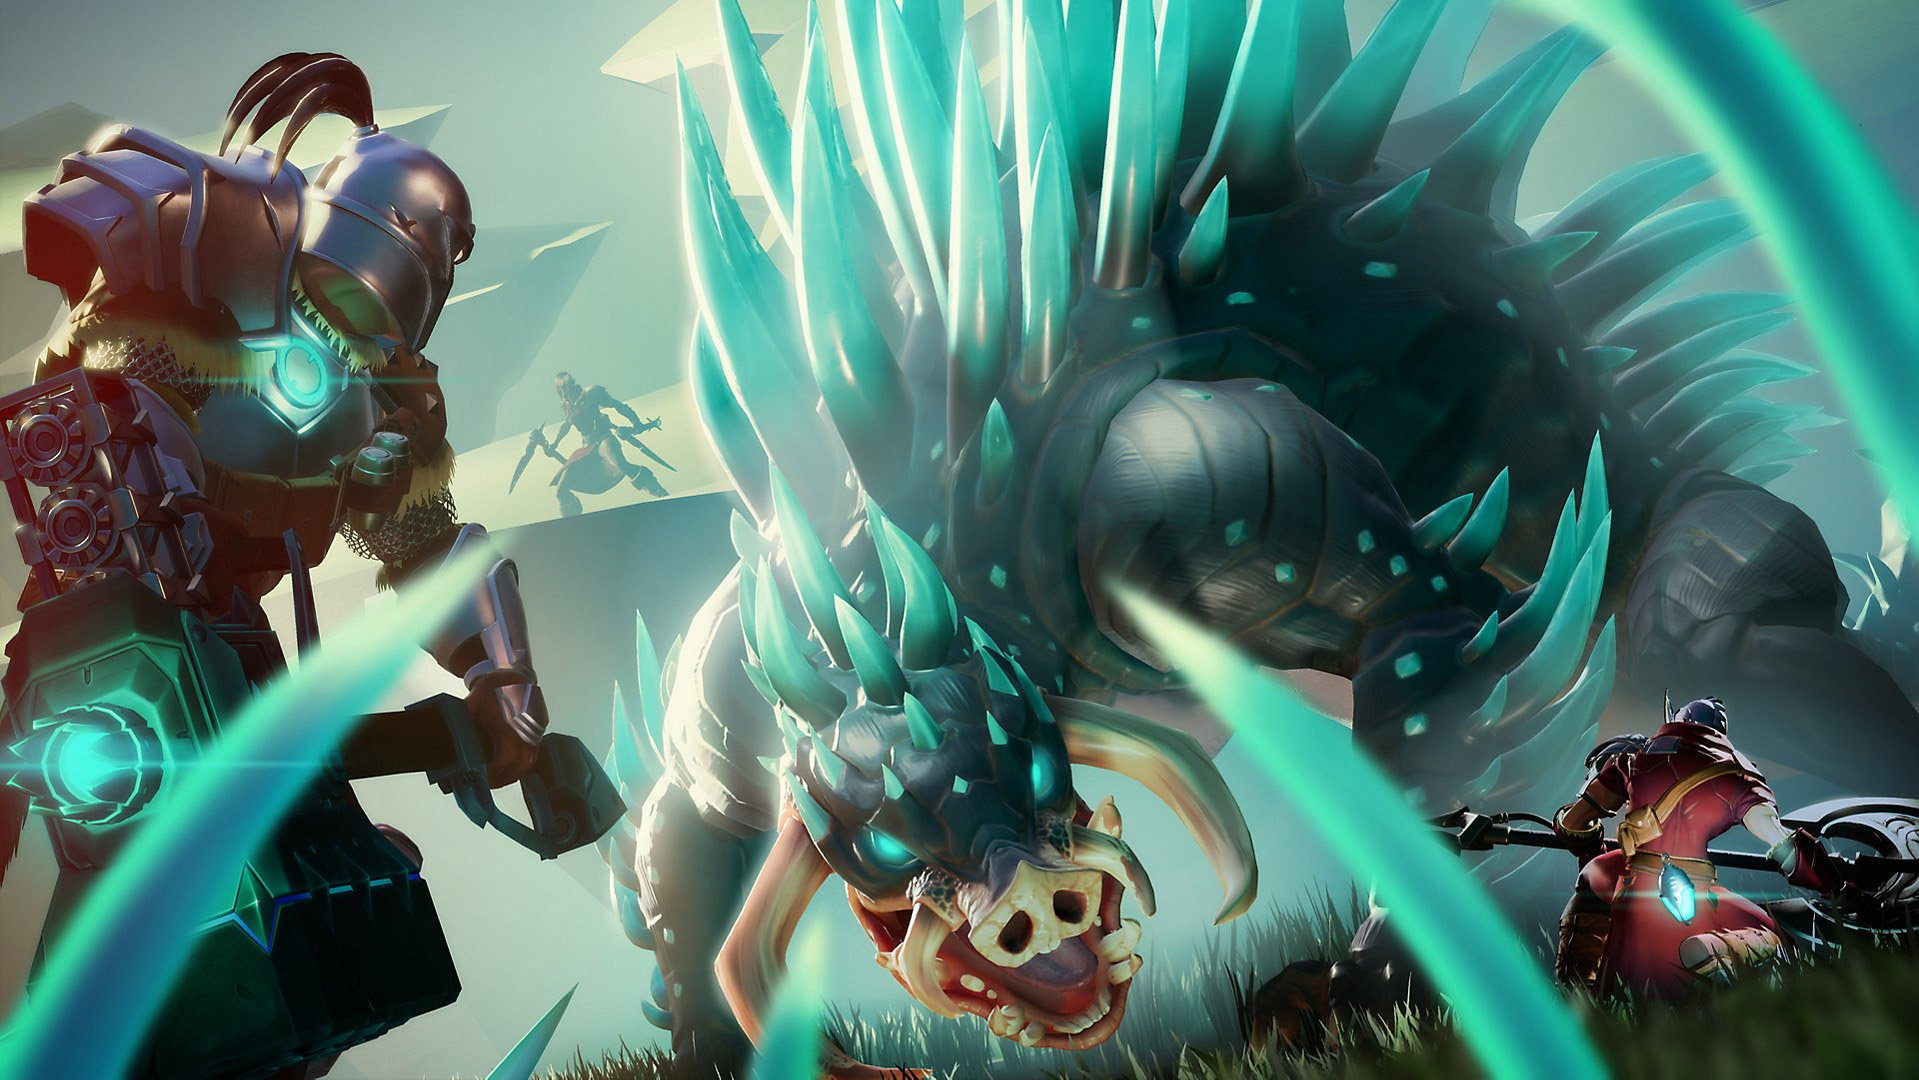 Dauntless is now on Nintendo Switch, complete with cross-play screenshot